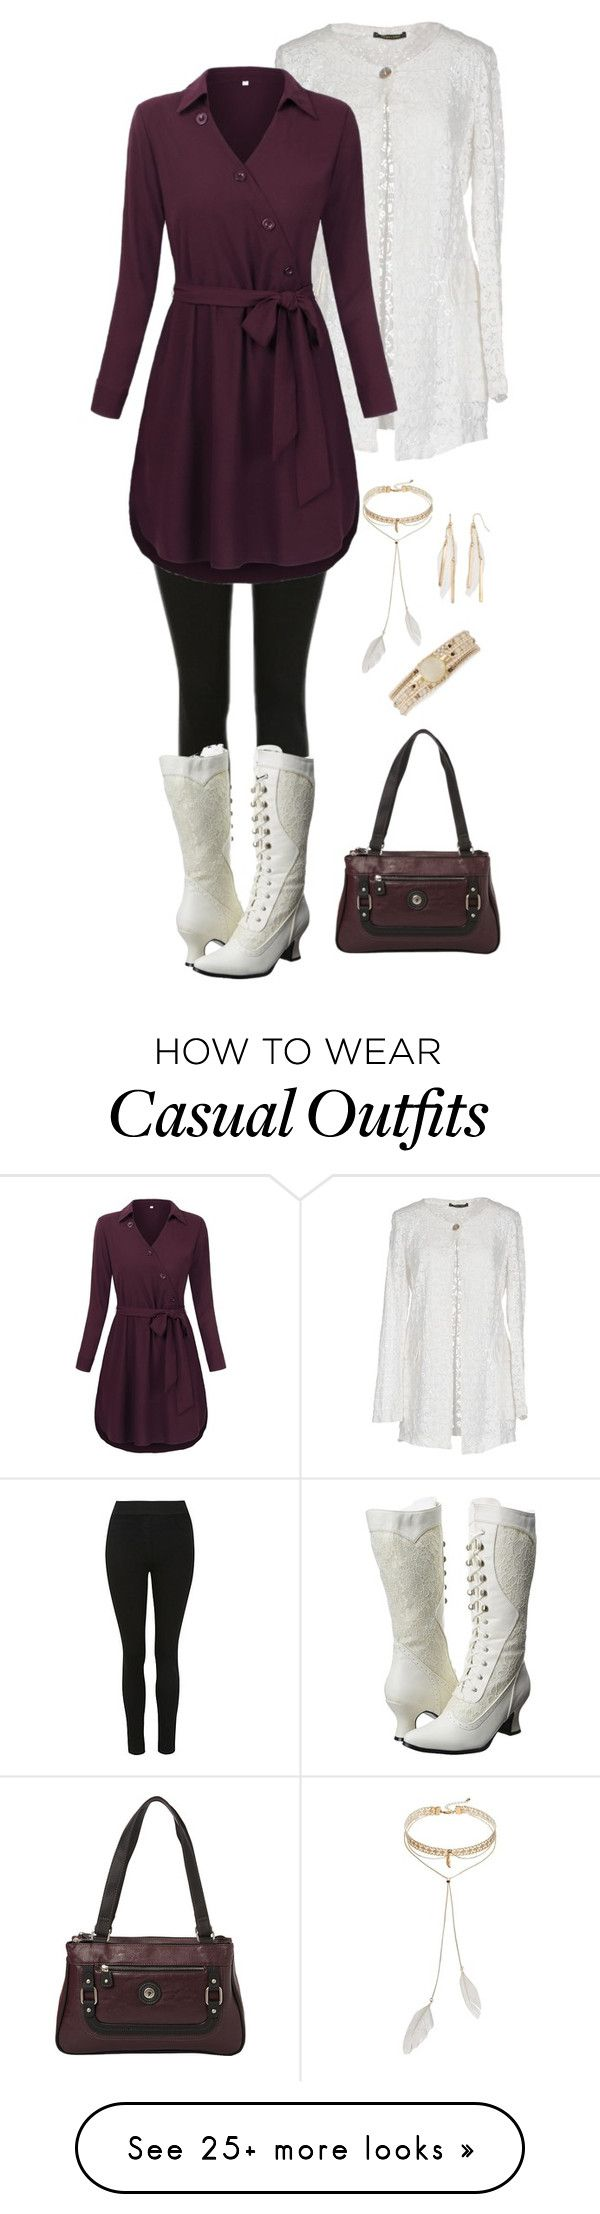 """""""Geen titel #737"""" by miriam-witte on Polyvore featuring Giorgia & Johns, Bølo, Ellie Shoes, NAKAMOL, Mudd and Mouflon"""